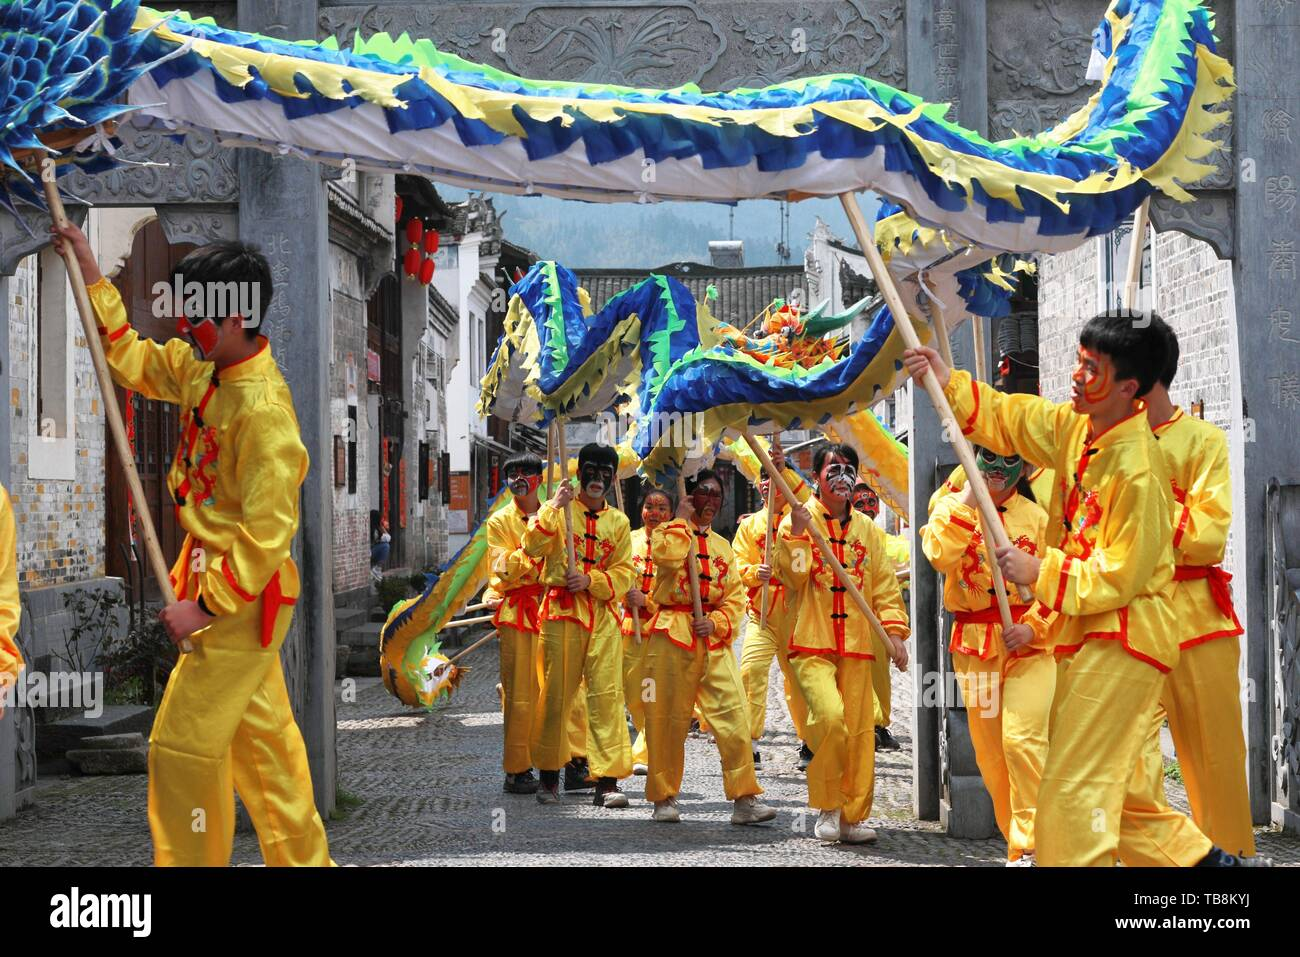 (190531) -- BEIJING, May 31, 2019 (Xinhua) -- Students of Longli Middle and Primary School perform Longli's dragon dance in the ancient town of Longli in Jinping County, southwest China's Guizhou Province, on March 20, 2019. Classified as an intangible cultural heritage of Guizhou Province in 2005, Longli's dragon dance has a history of more than 600 years. China has set up a nationwide intangible cultural heritage protection network comprising 2,467 institutions and 17,308 personnel as of the end of 2018, according to a government report. These institutions sponsored about 65,500 related p - Stock Image